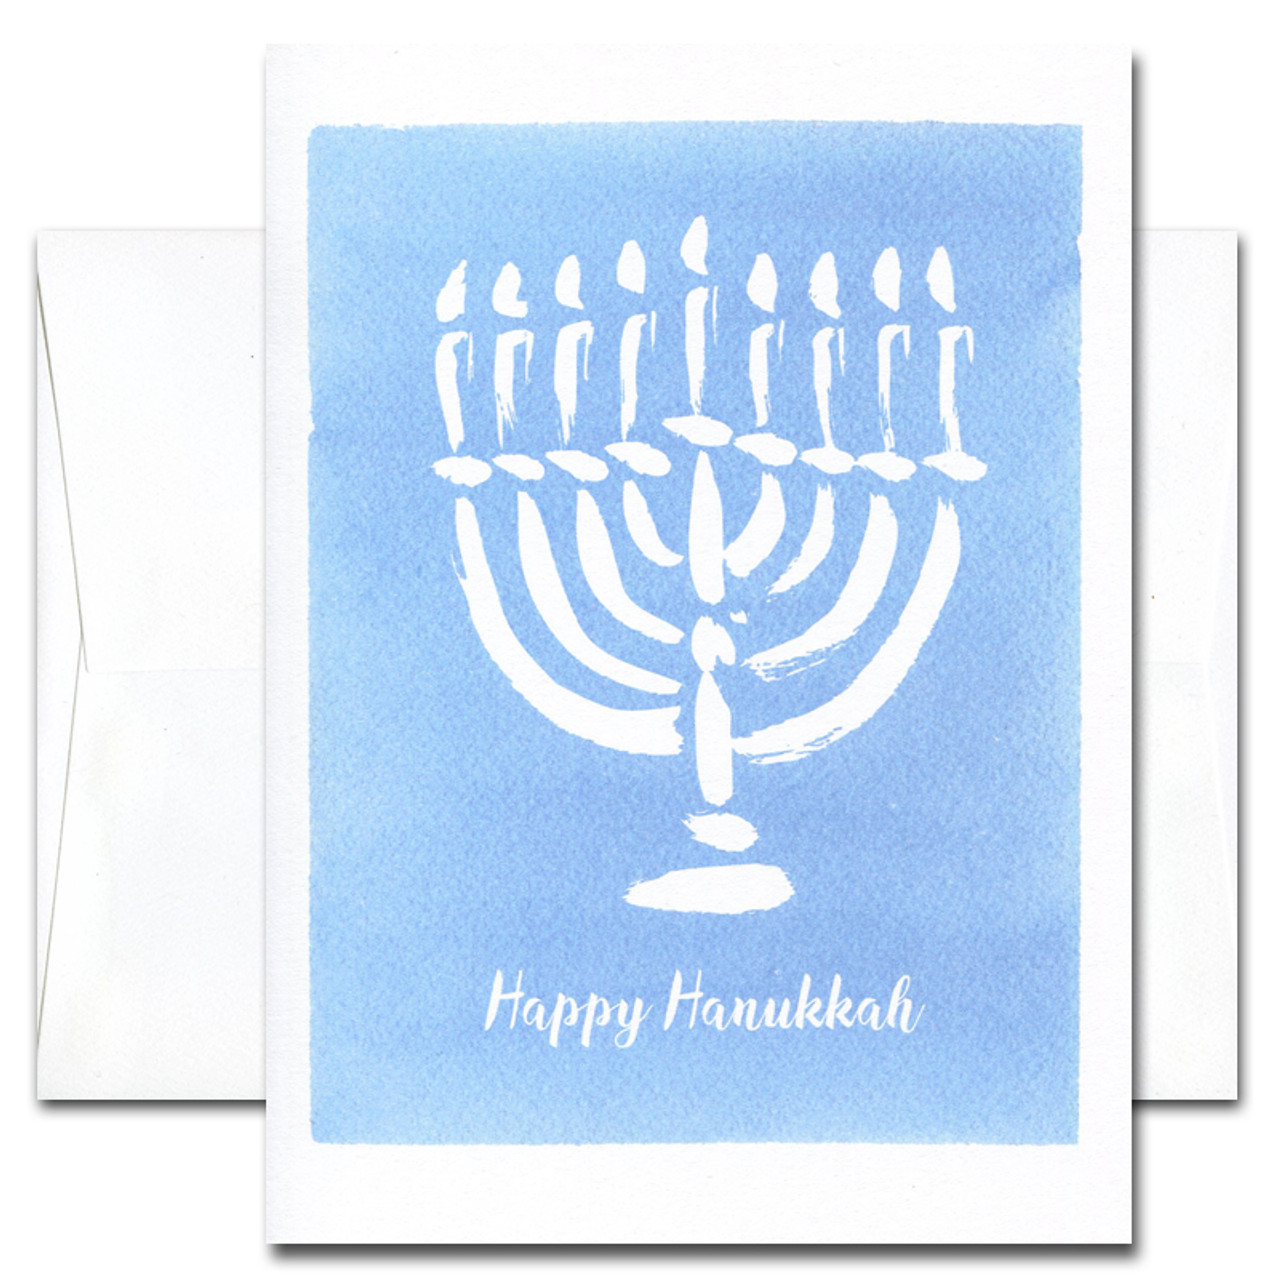 Hanukkah Card - Happy Time. Cover shows a brushstroke design menorah against a hand-painted blue watercolor background and the words Happy Hanukkah